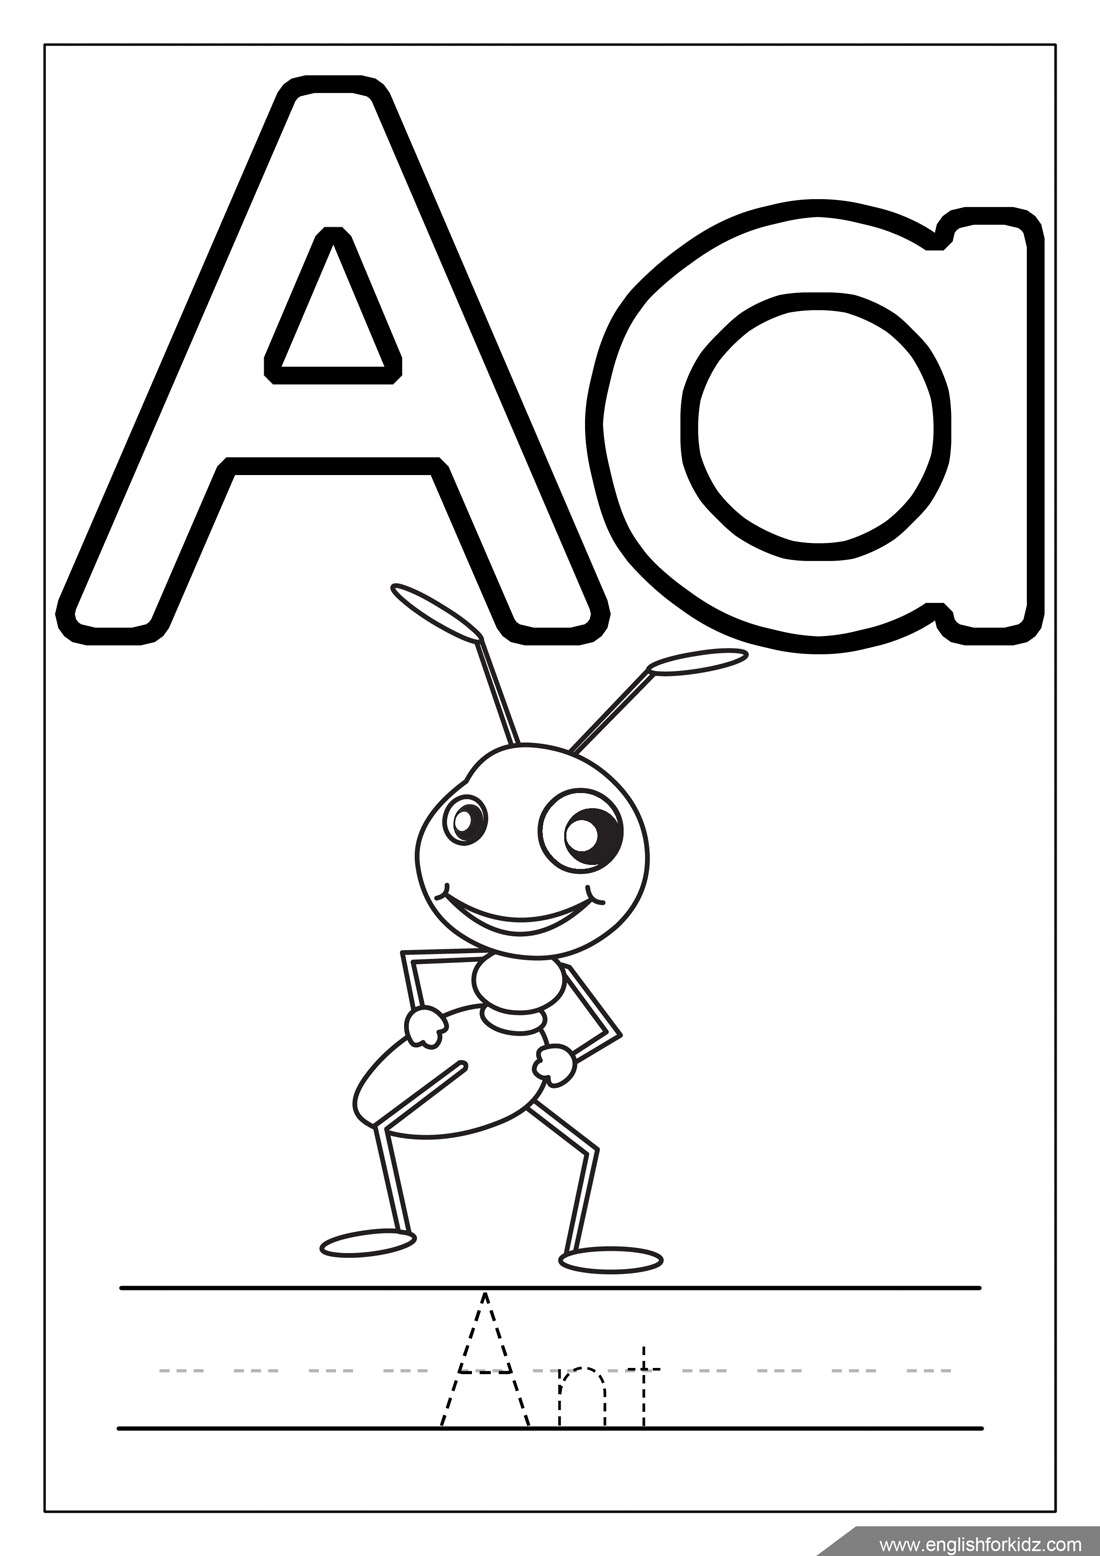 a coloring pages # 6